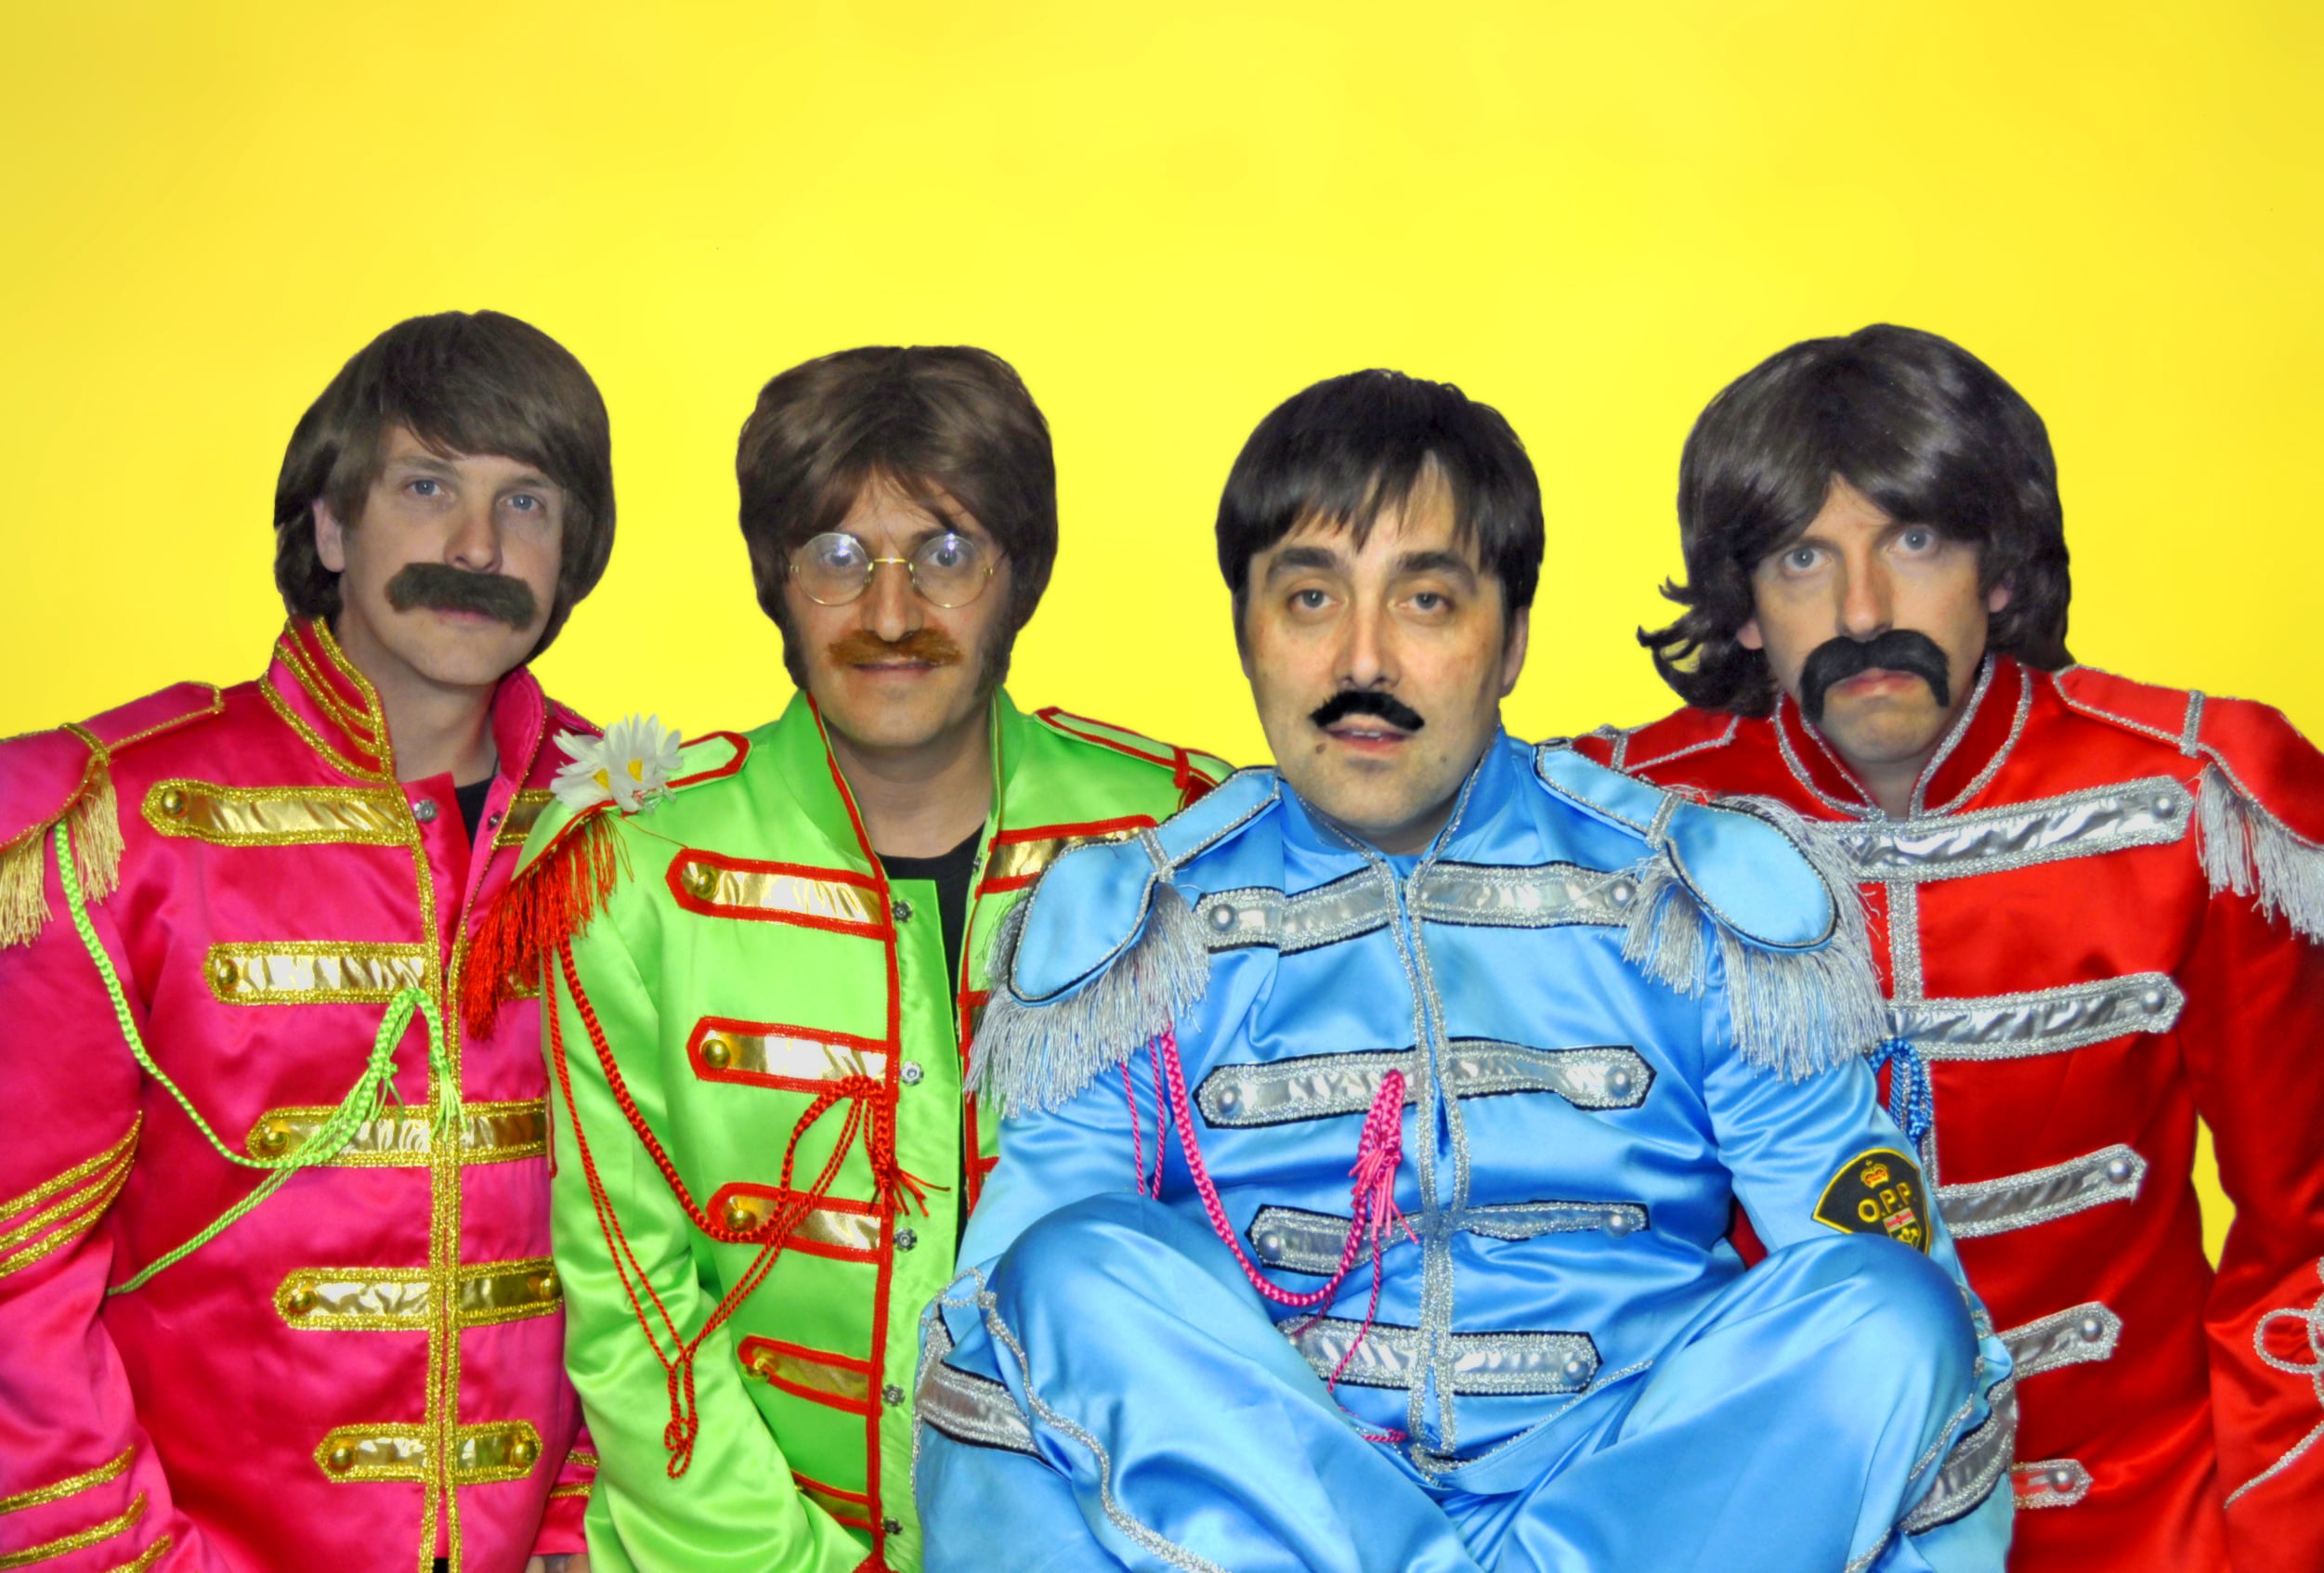 All You Need Is The Beatles: Sgt. Pepper's Lonely Hearts Club Band 50th Anniversary Celebration Concert